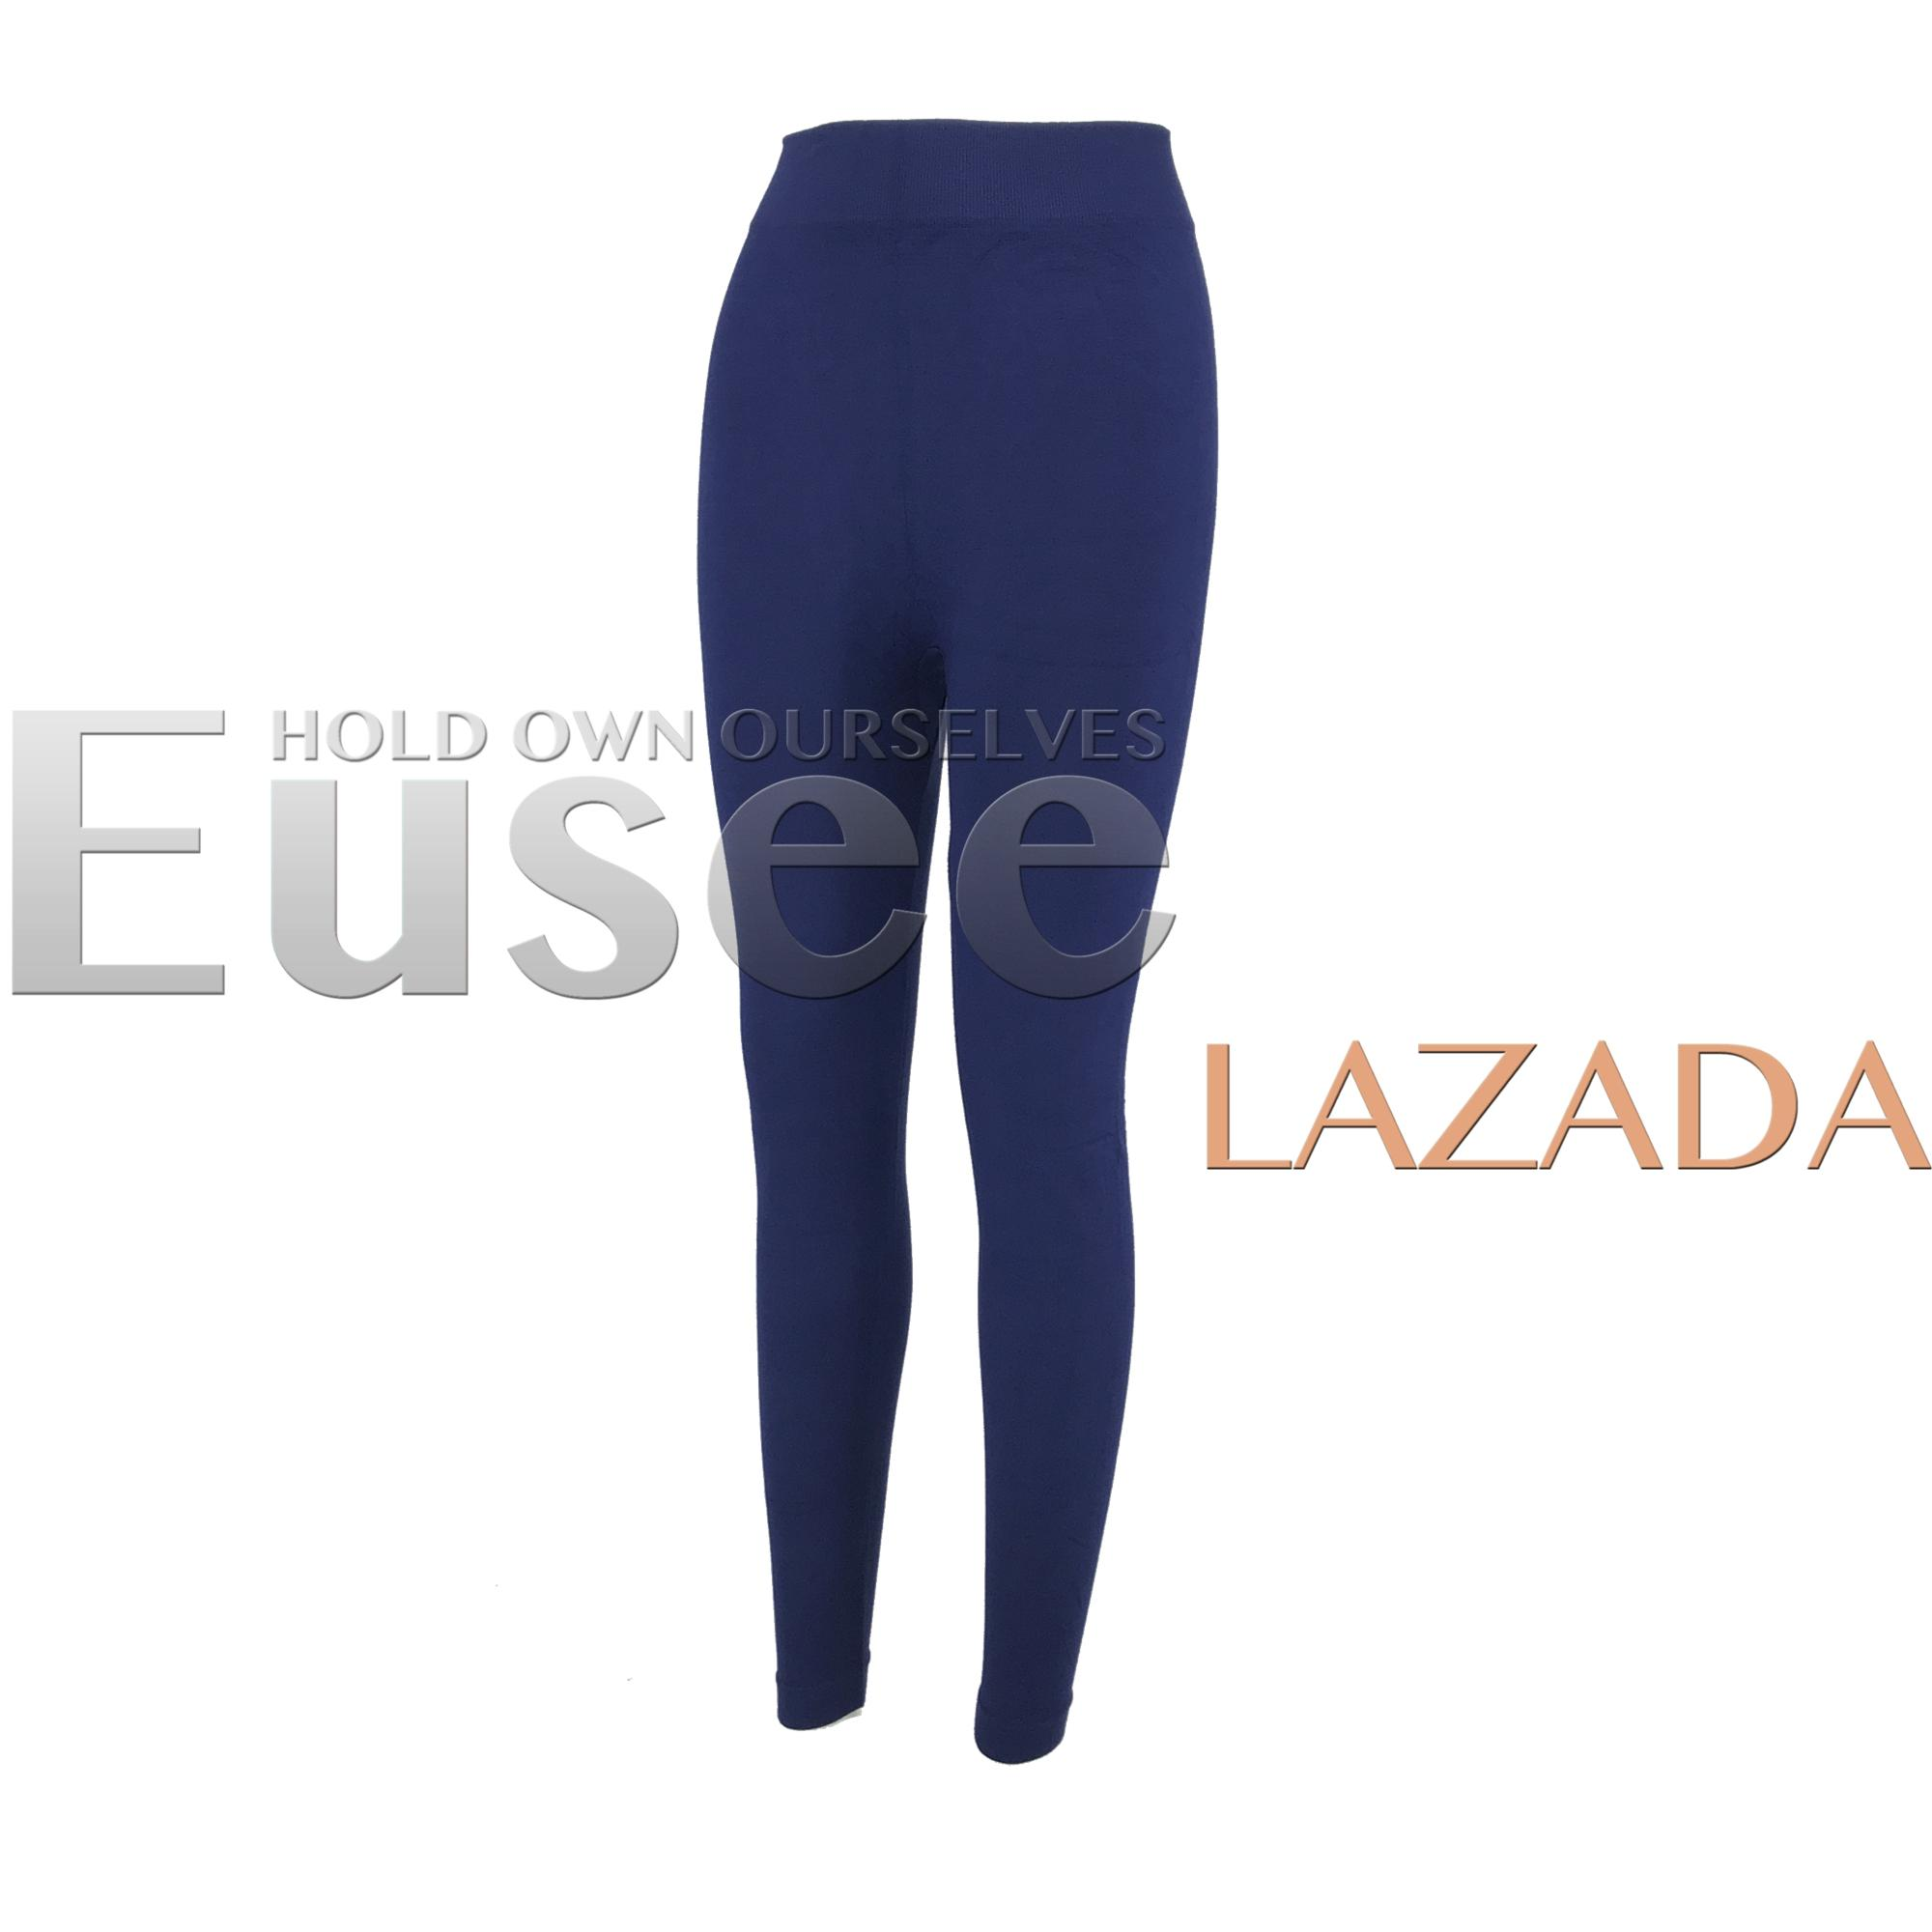 e0a48542bcce1 Leggings for Women for sale - Womens Leggings Online Deals & Prices in  Philippines   Lazada.com.ph